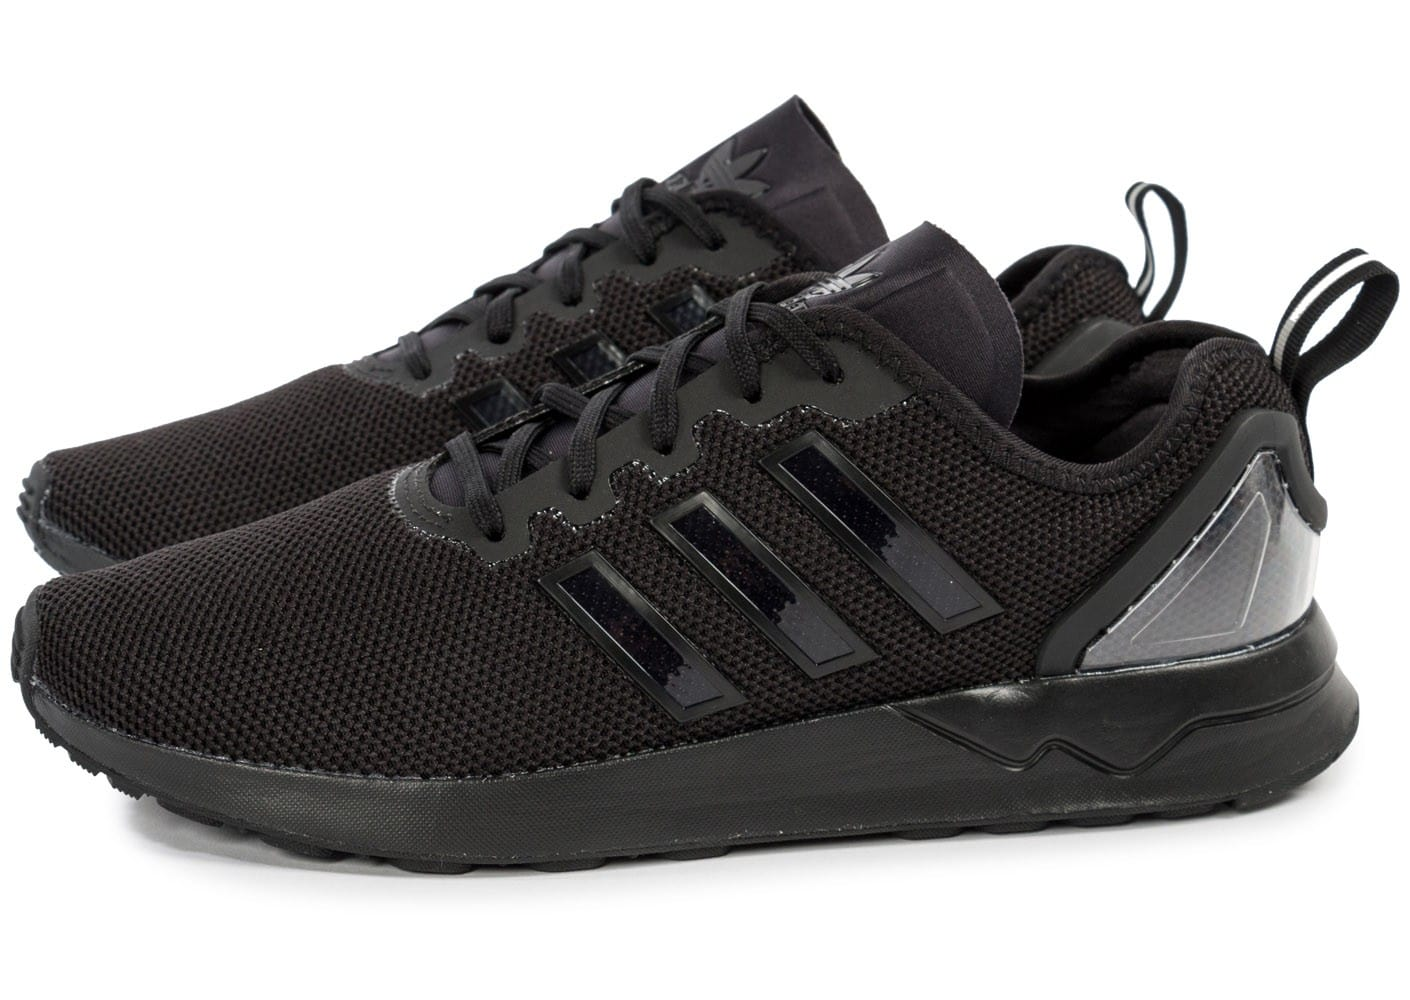 adidas zx flux adv racer noire chaussures homme chausport. Black Bedroom Furniture Sets. Home Design Ideas